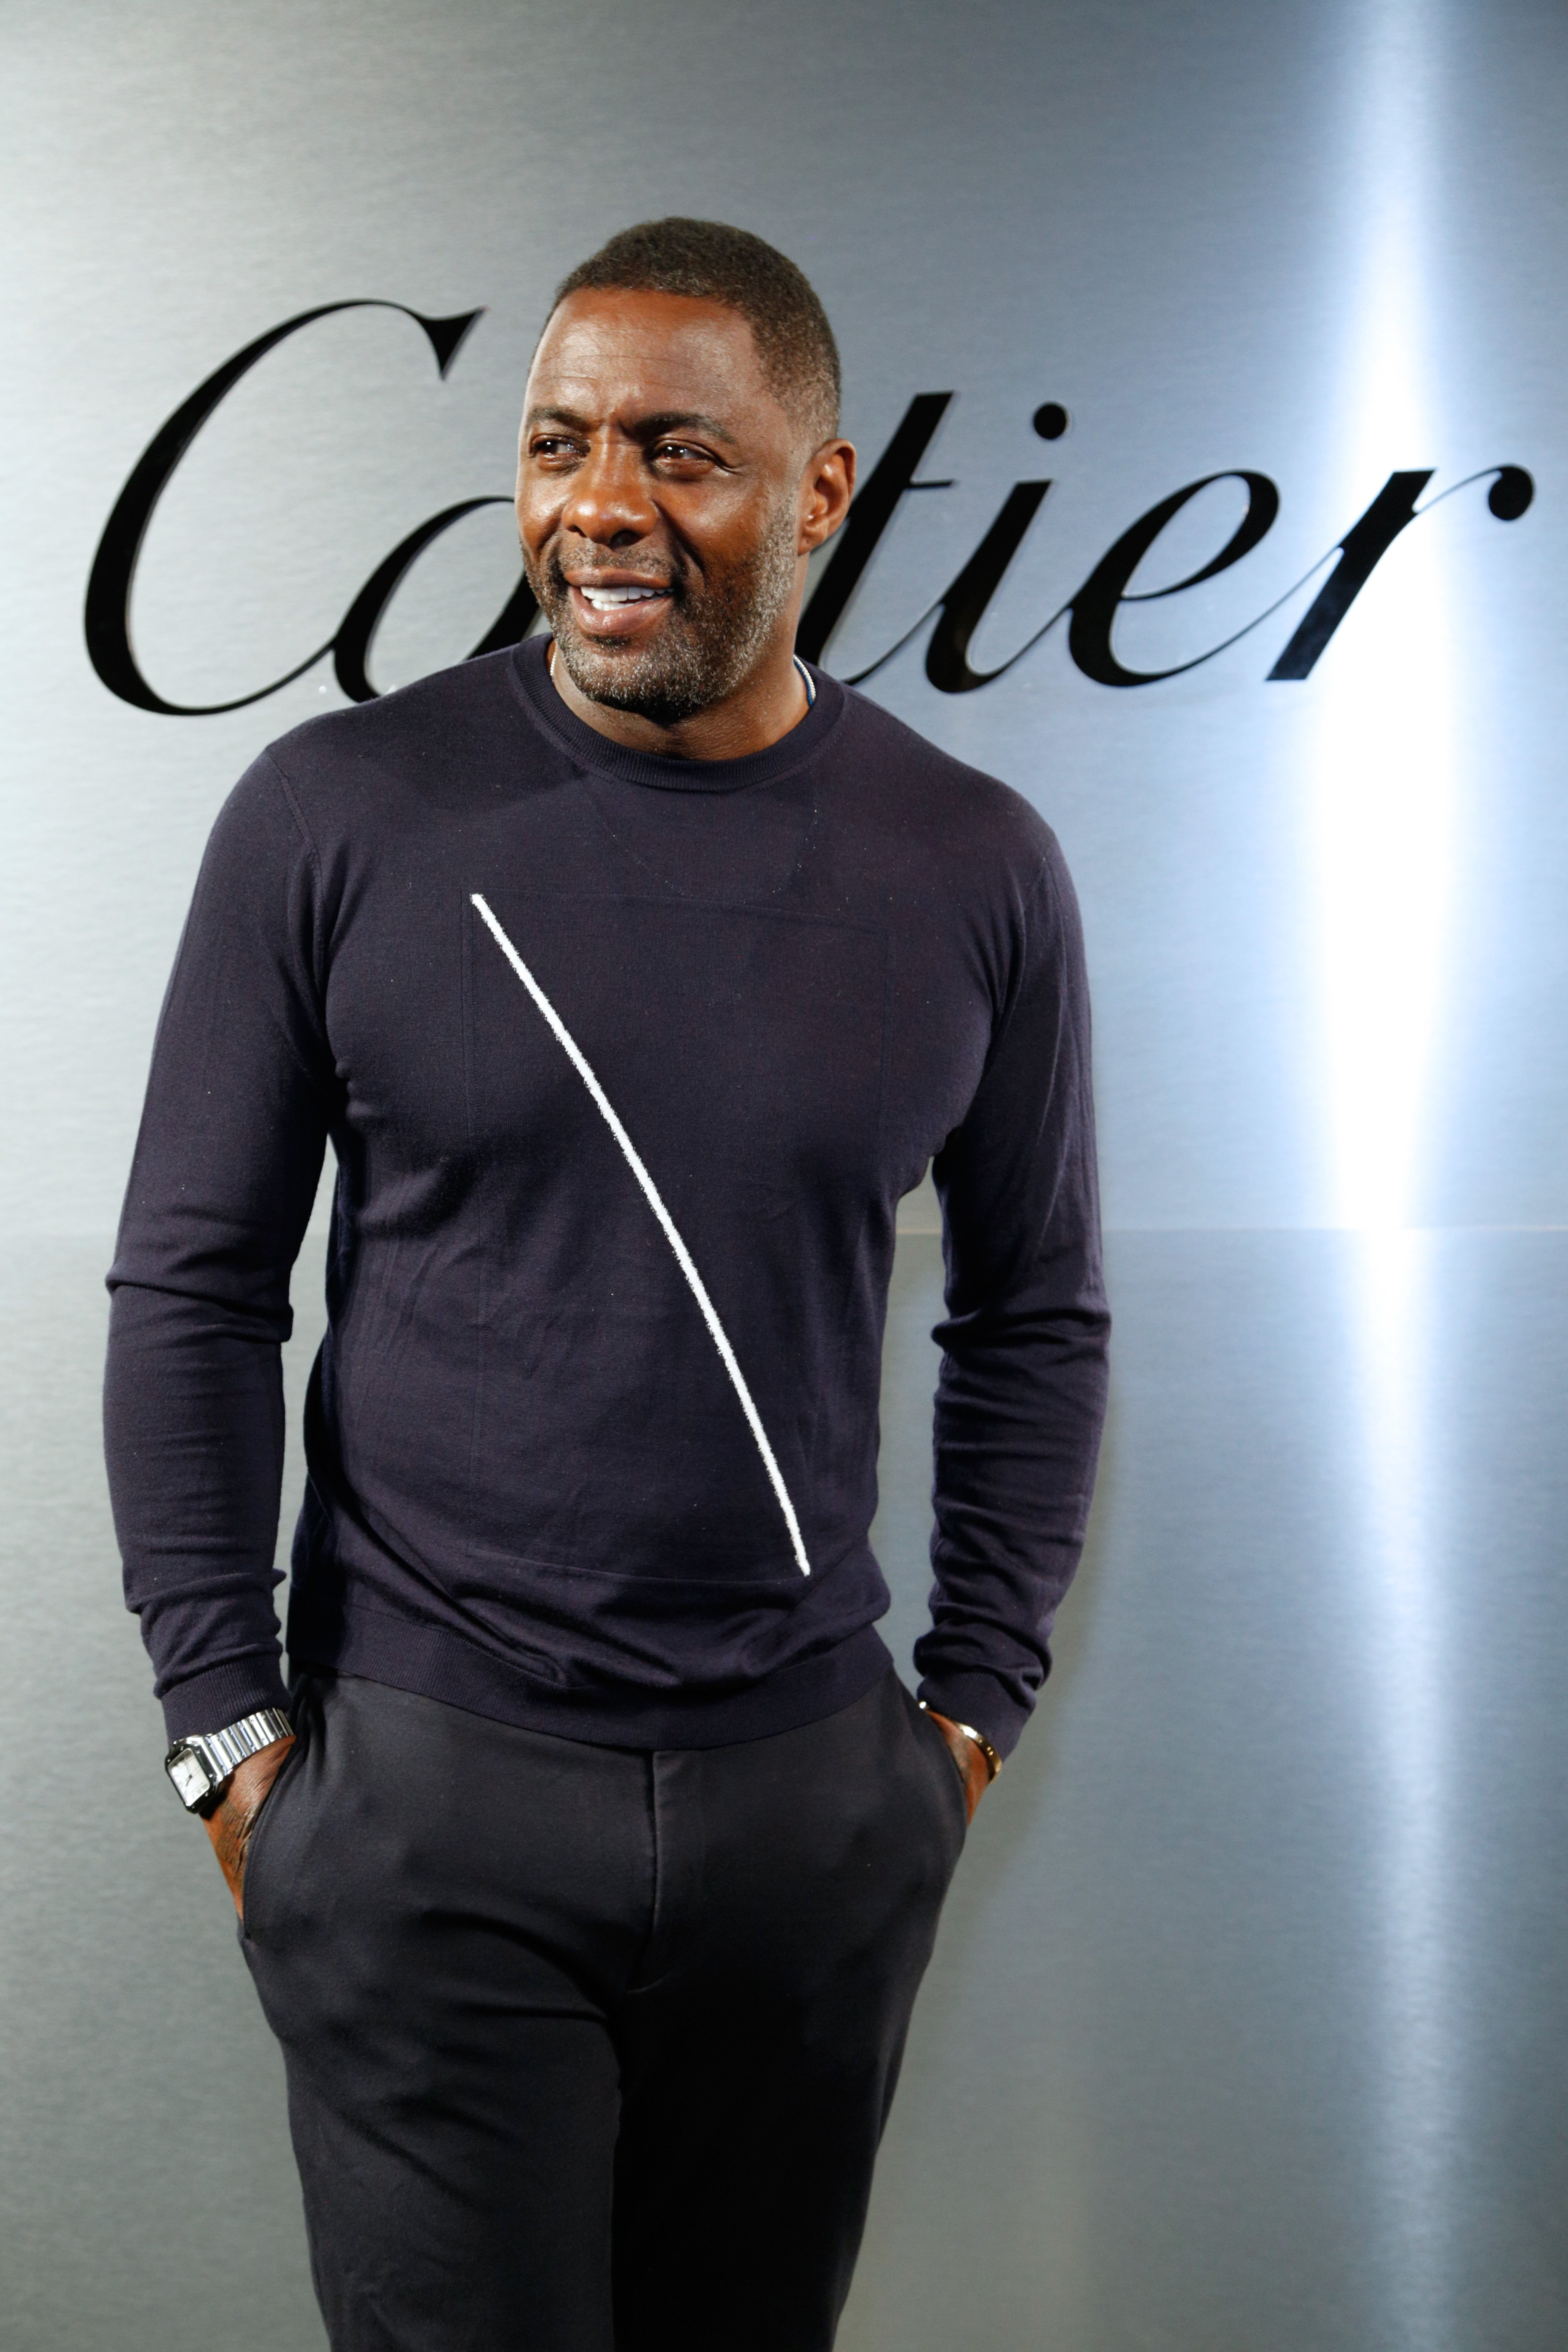 Idris Elba at Cartier celebration of the launch of Santos de Cartier Watch on Apr. 5, 2018 in San Francisco.  Photo: Getty Images